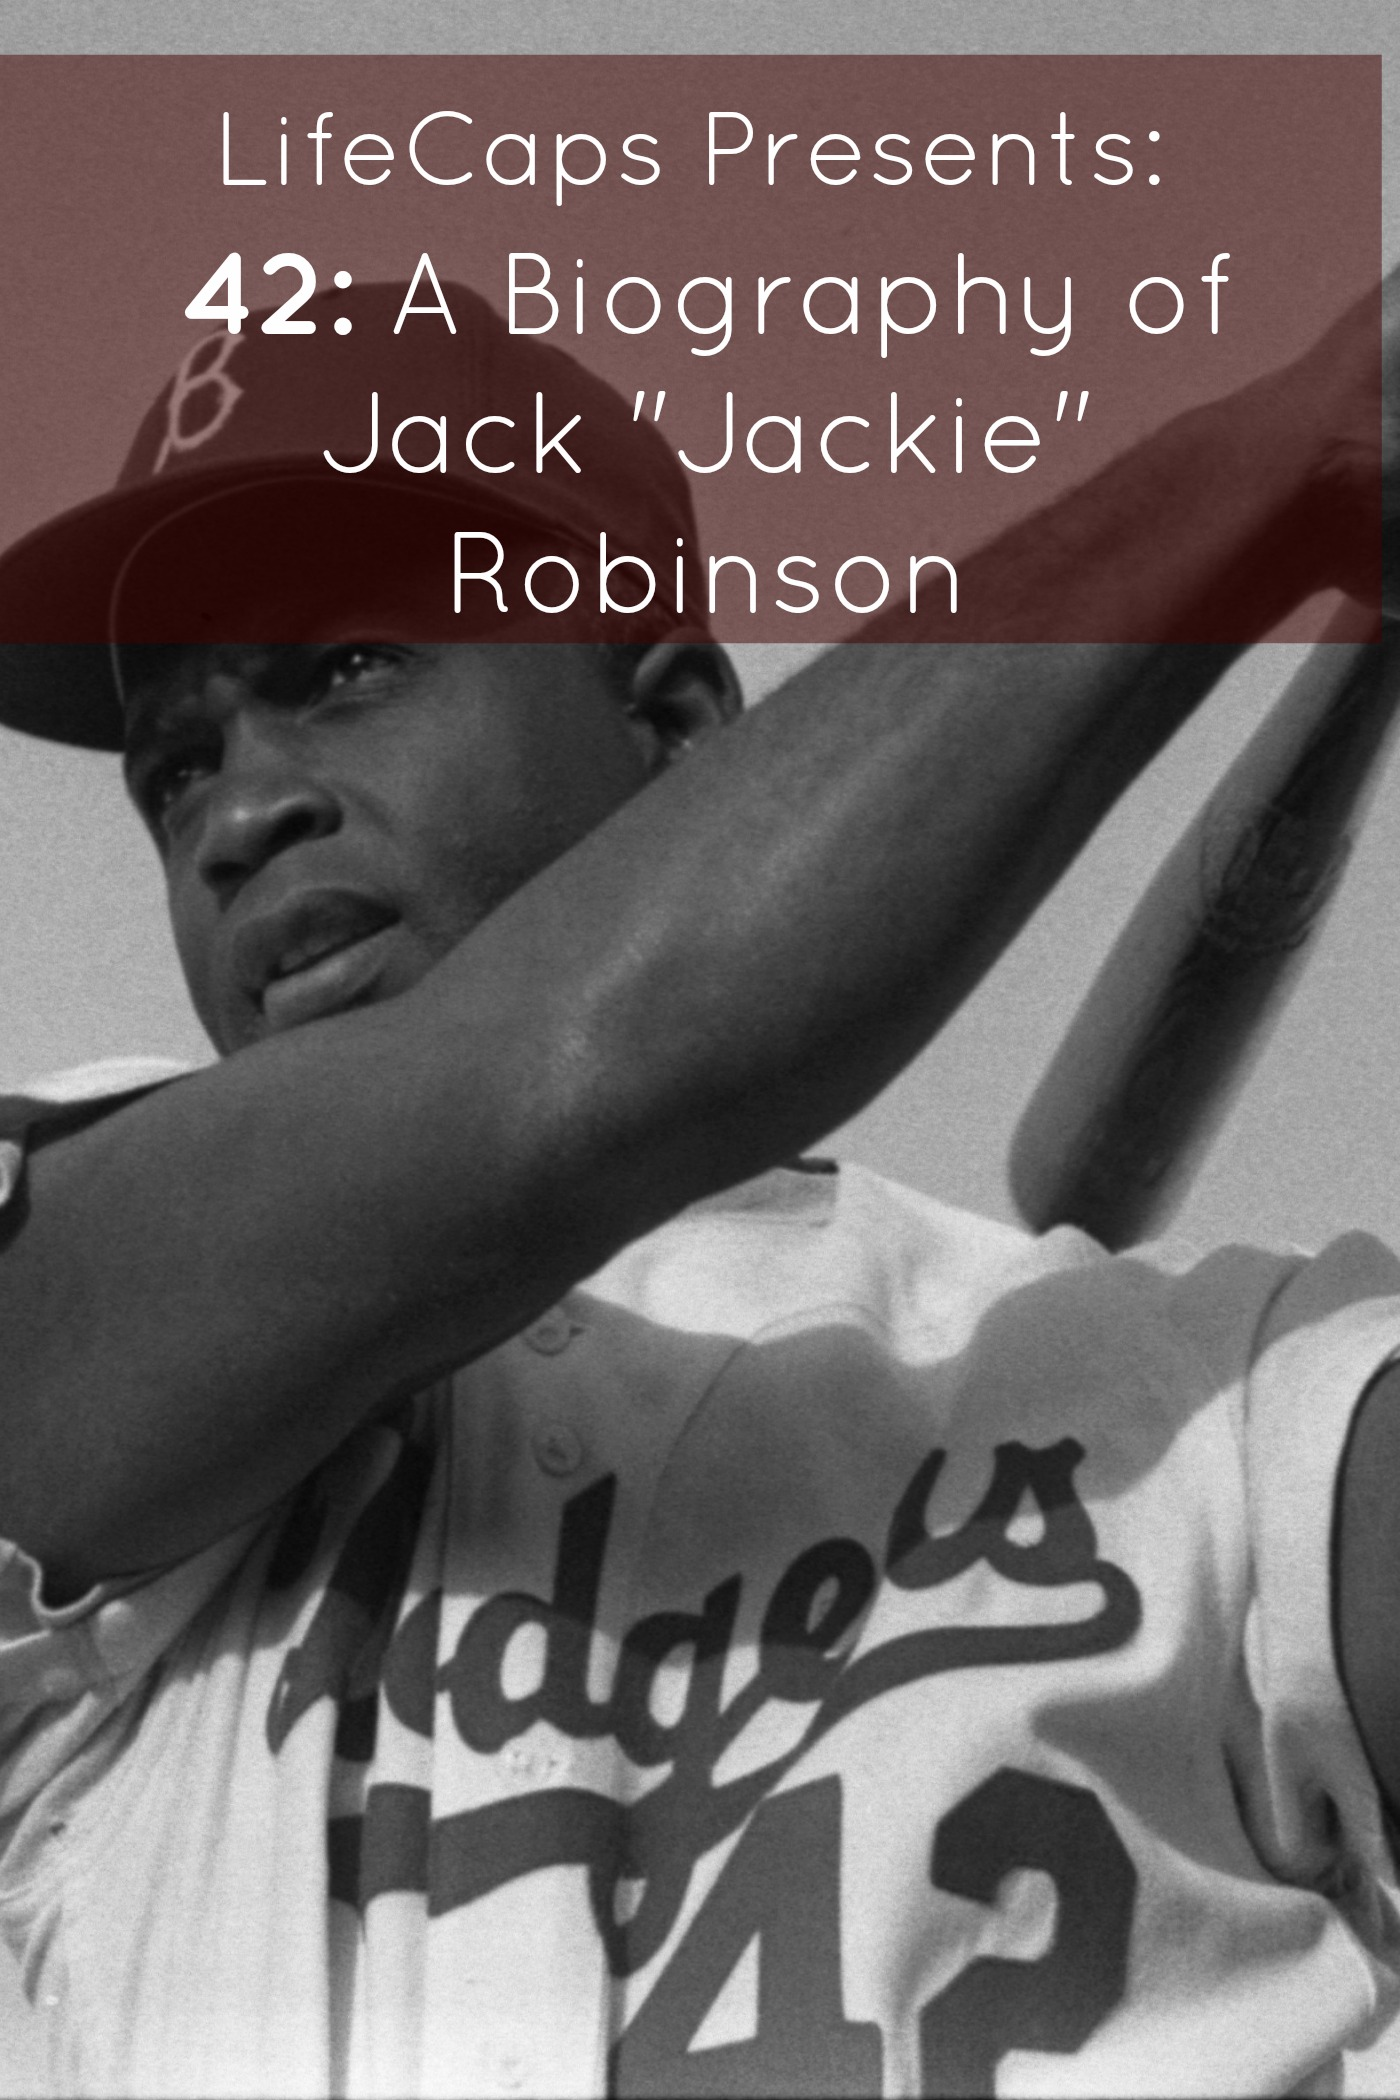 a biography of a slave jackie robinson A biography of a slave jackie robinson 522 words 1 page breaking the color barrier: a biography of jackie robinson a baseball player 1,008 words 2 pages.